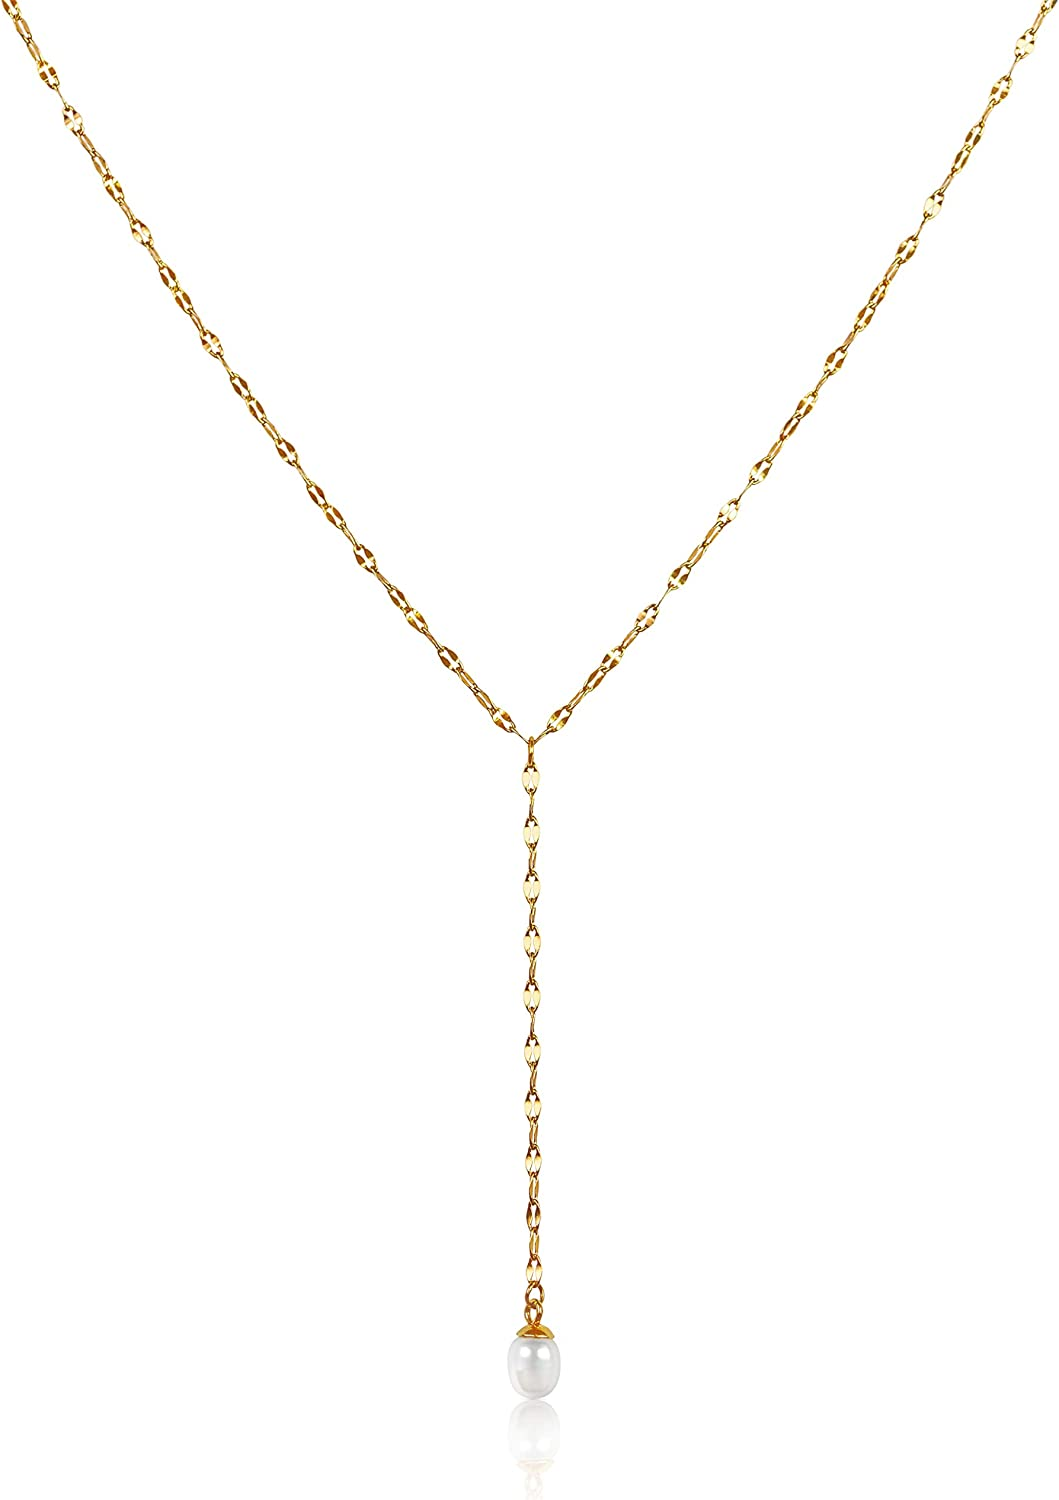 Classic Y Necklace For Women   Long Gold Necklaces for Women   Pendant Pearl Y Necklace, Gold Necklace For Women   Lariat Layering Gold Jewelry, Y Pearl Necklace   Dainty Drop Necklaces   Lariat Necklaces for Women